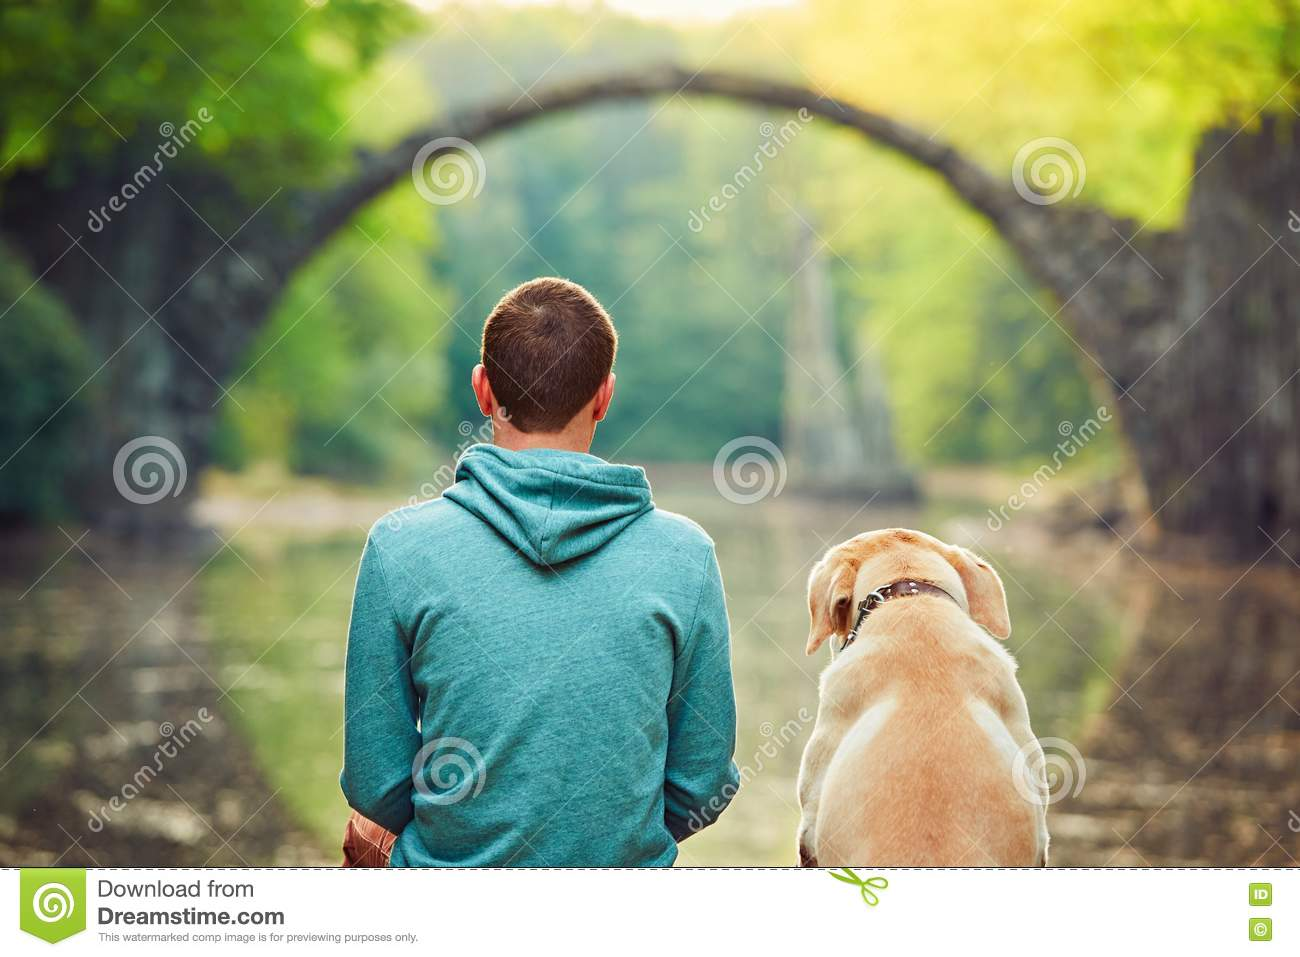 436dcca38 Pensive Man Sitting With His Dog Stock Photo - Image of nature ...